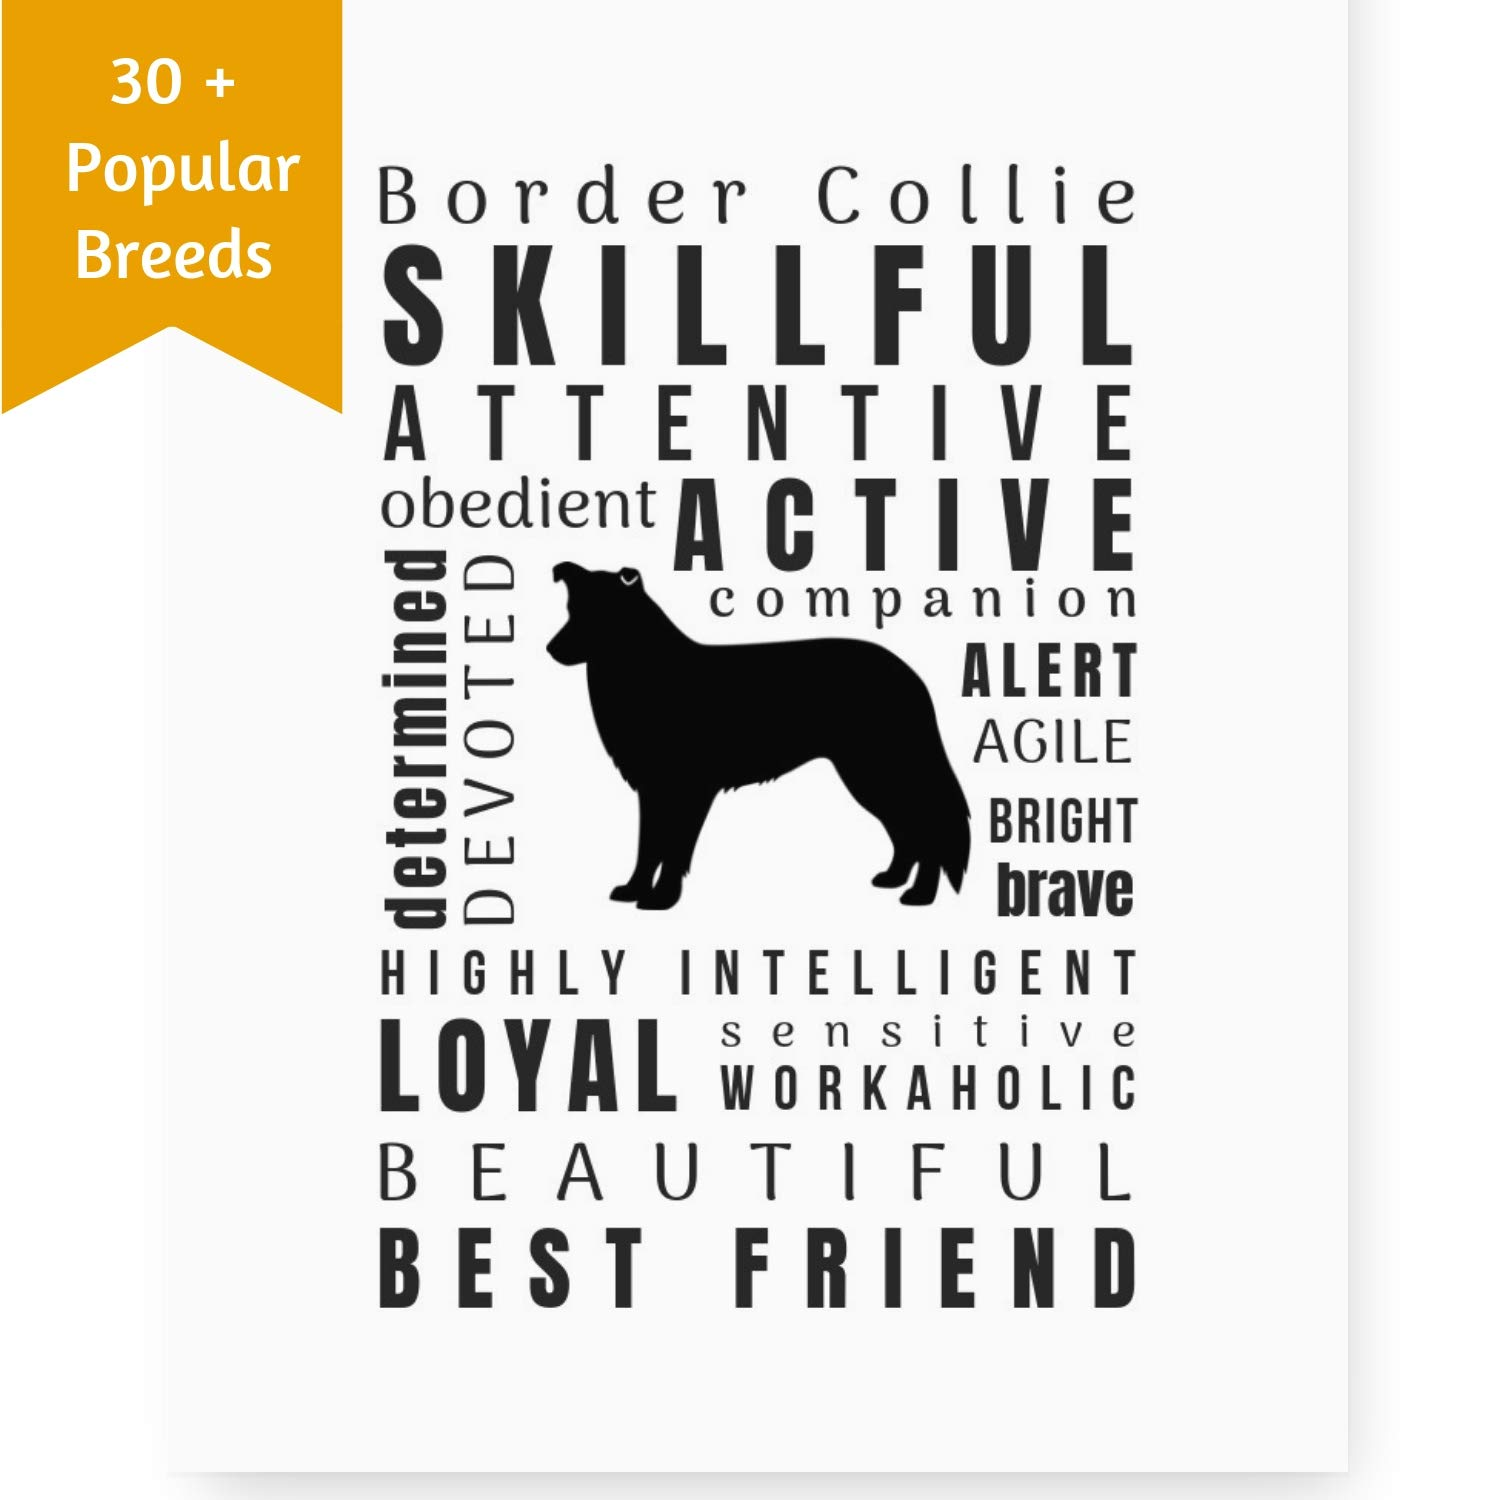 Dragonfly home & gift Dog Décor Border Collie Wall Art - Quote Print (8.5x11 Unframed) Pet Memorial Gifts | Dog Mom | New Puppy | Original Gifts for Dog Lovers